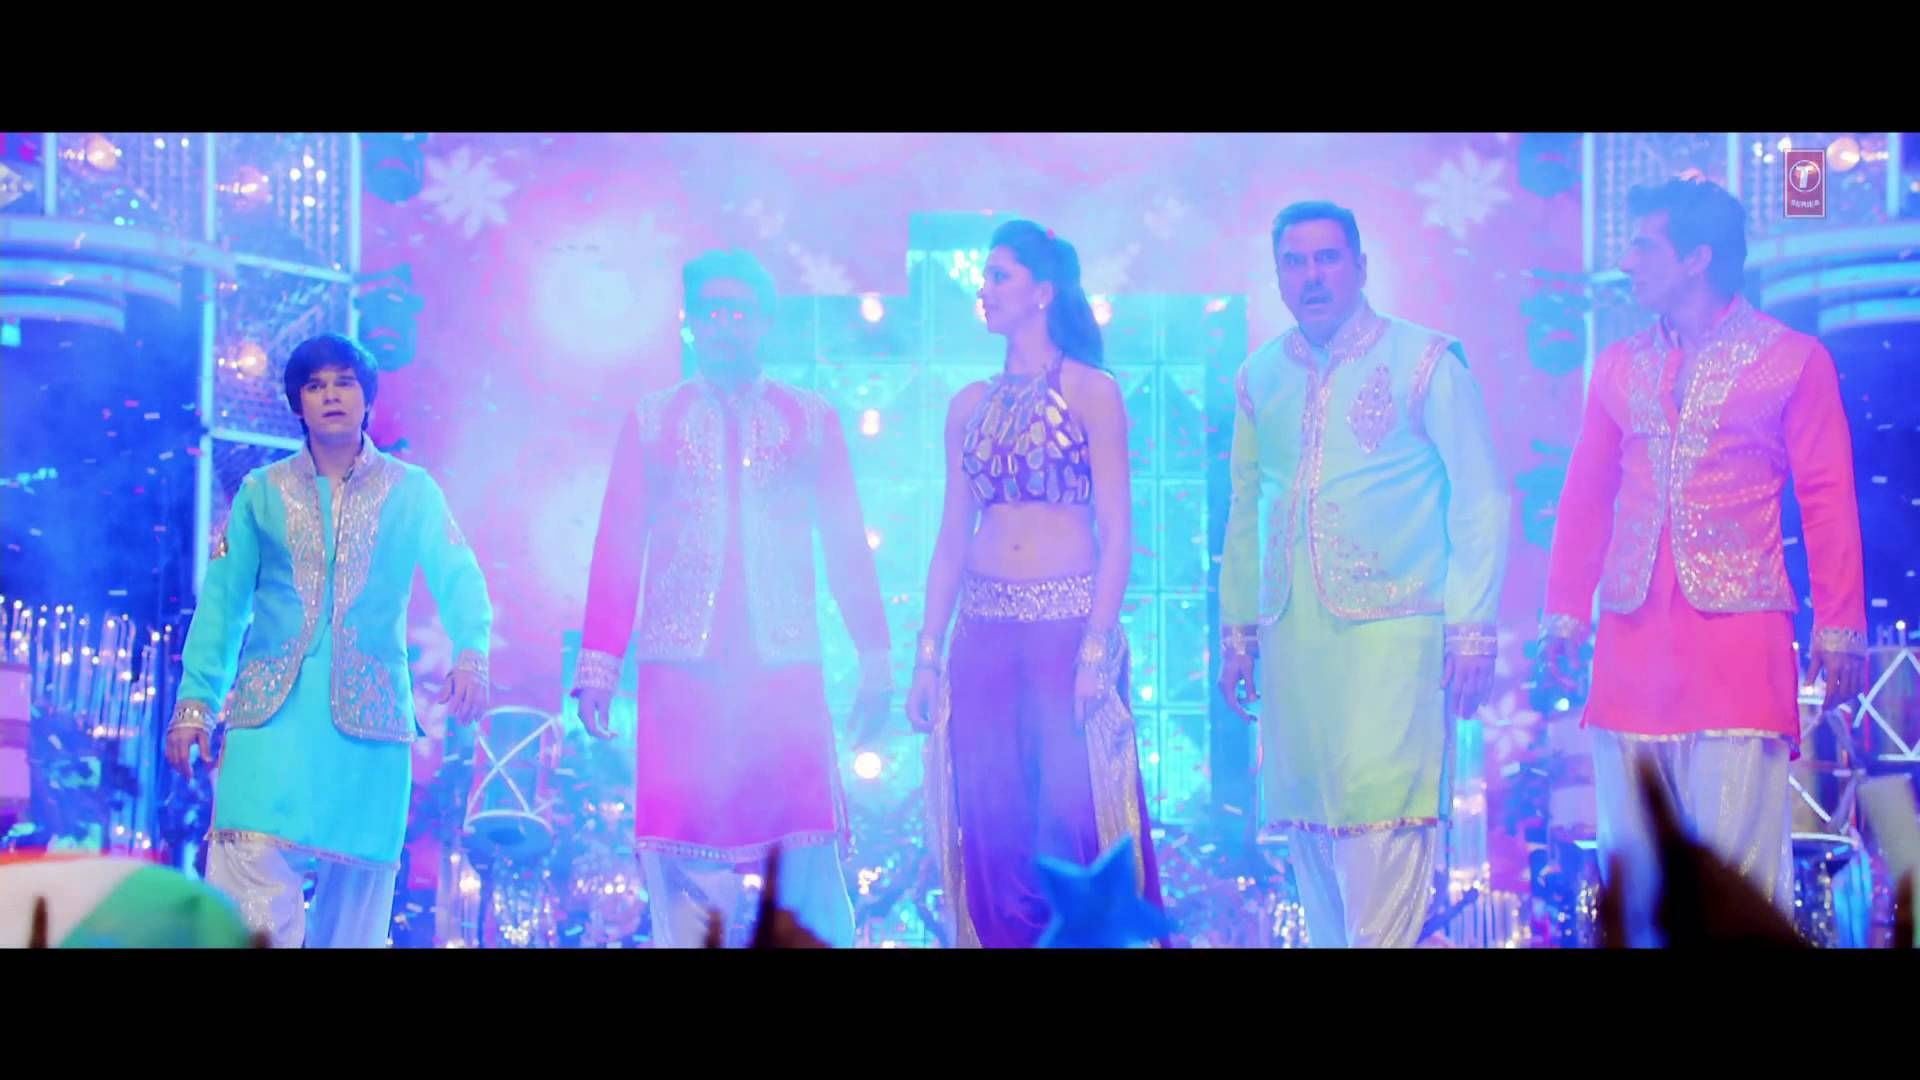 Official World Dance Medley Full Video Song Happy New Year Shah R World Dance Bollywood Music Bollywood Songs